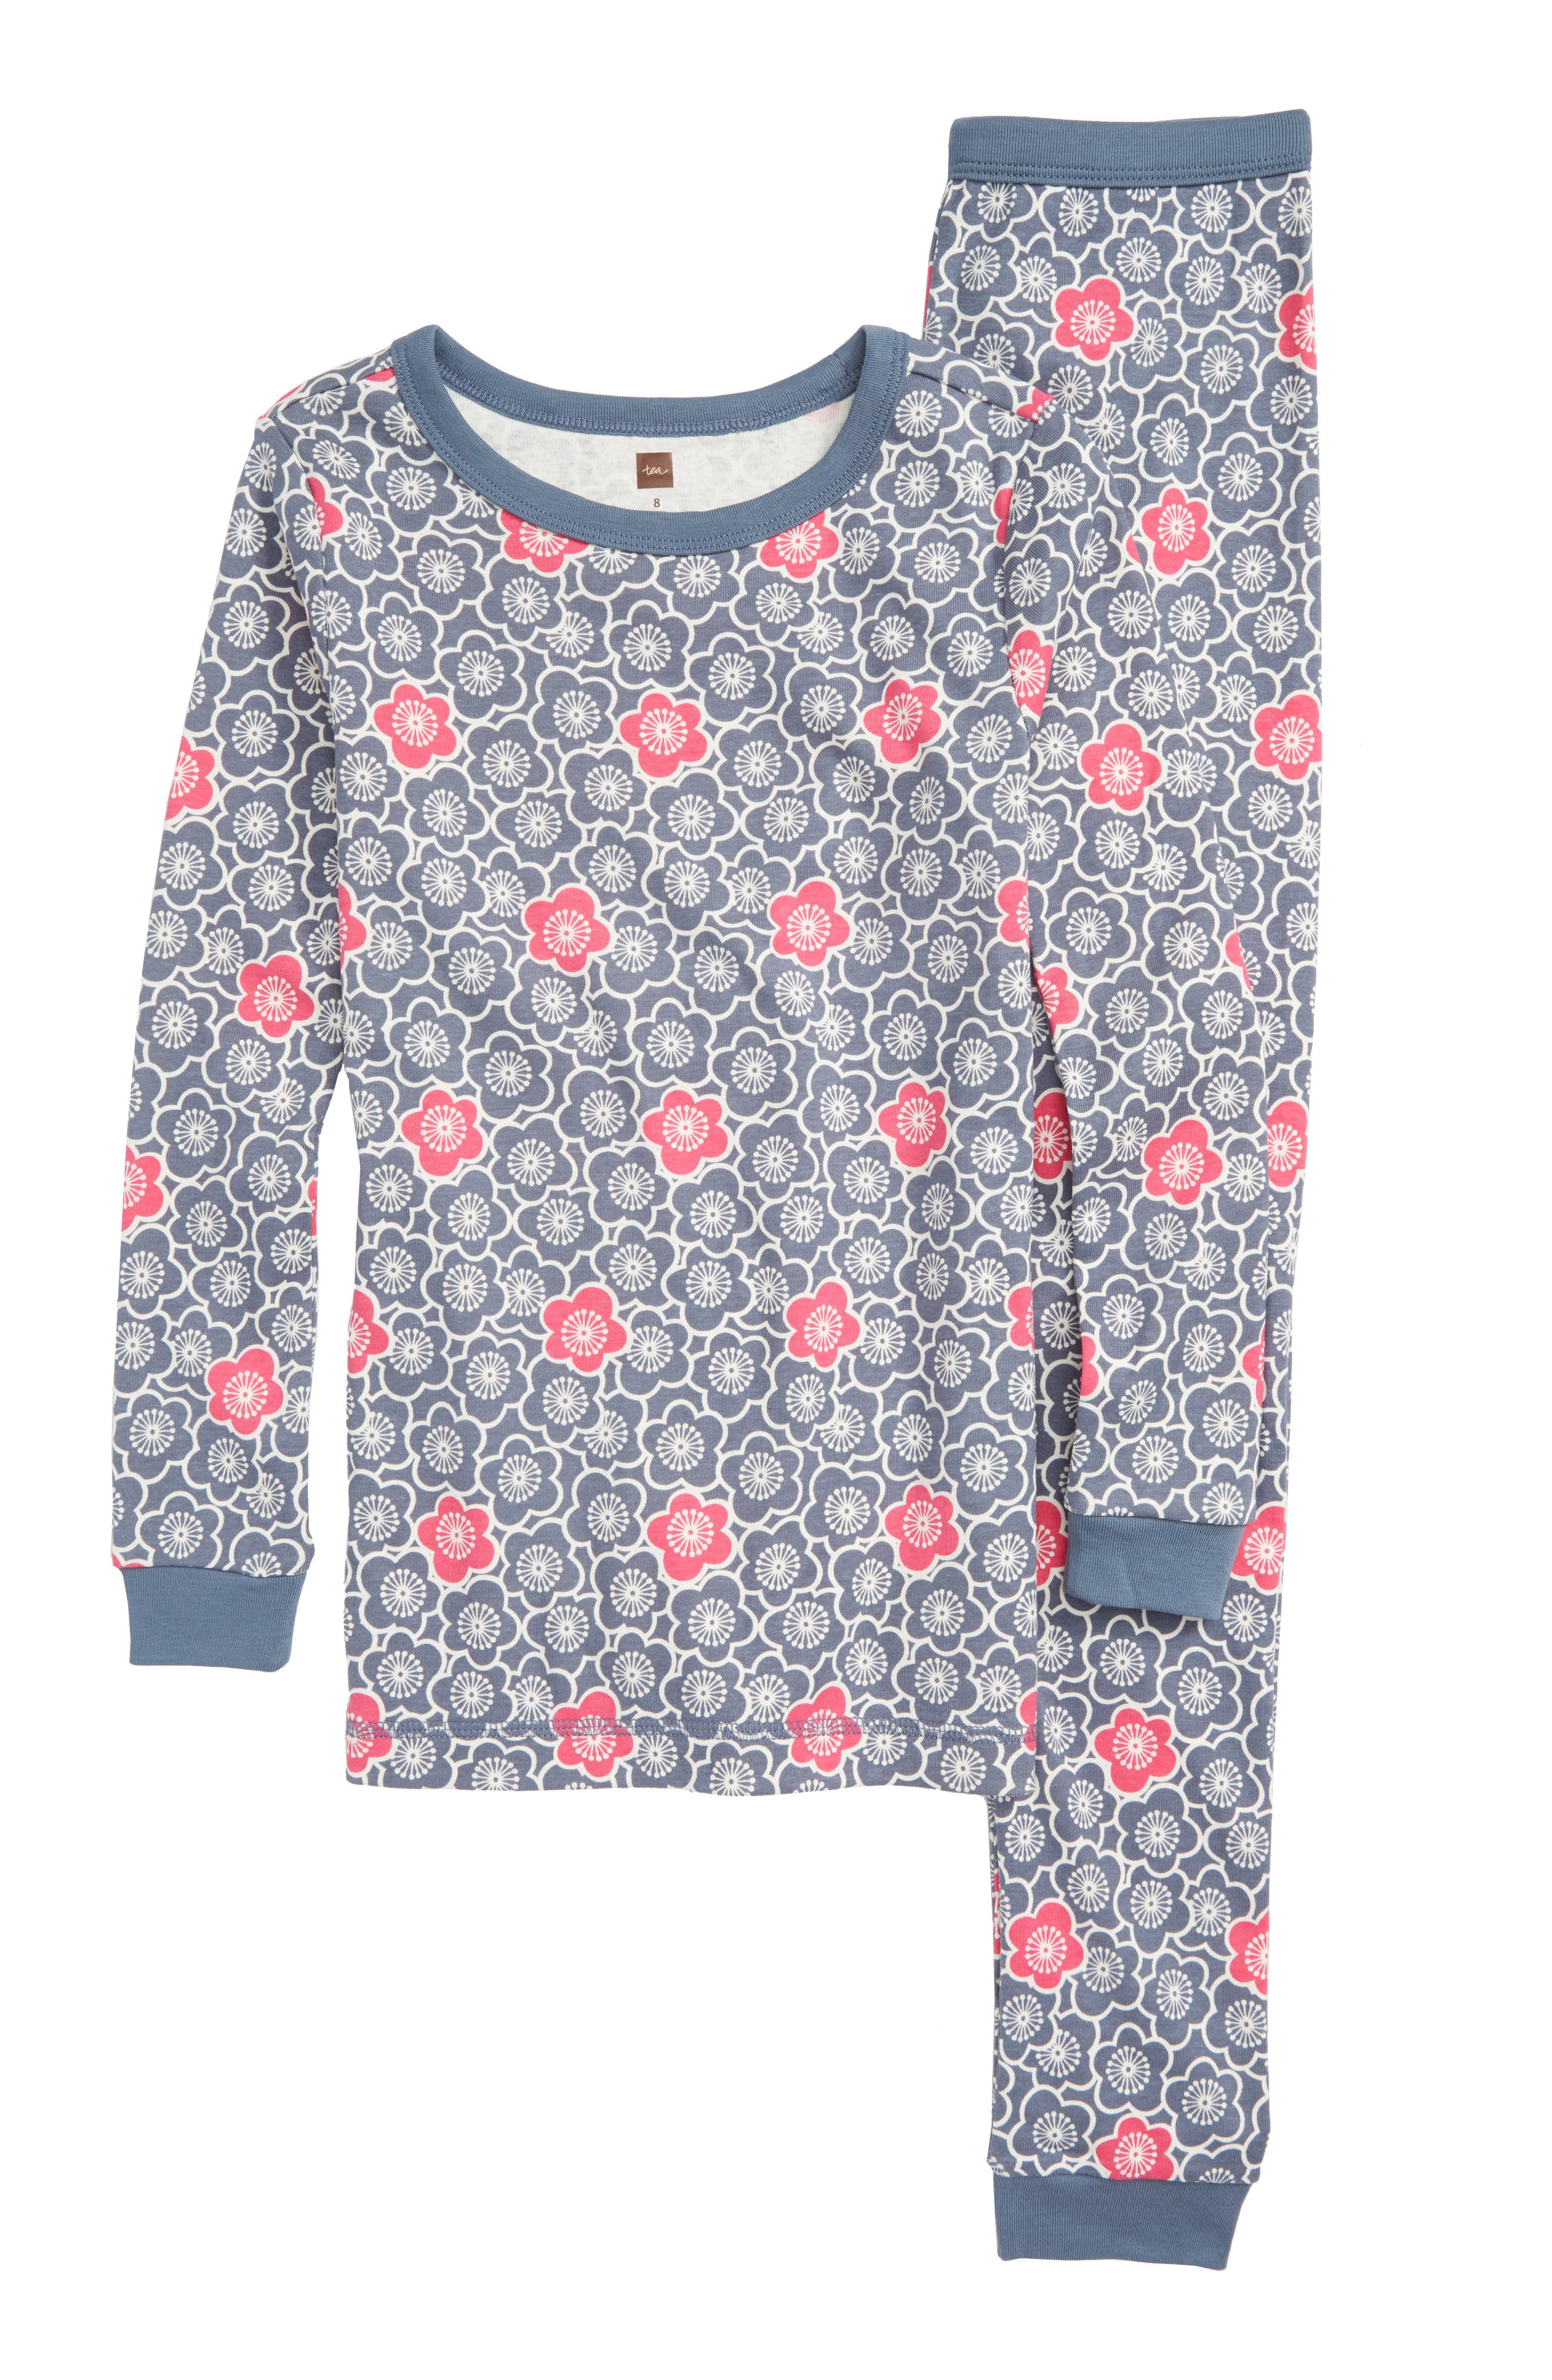 Fitted Two-Piece Pajamas,                             Main thumbnail 1, color,                             UMI FLORAL